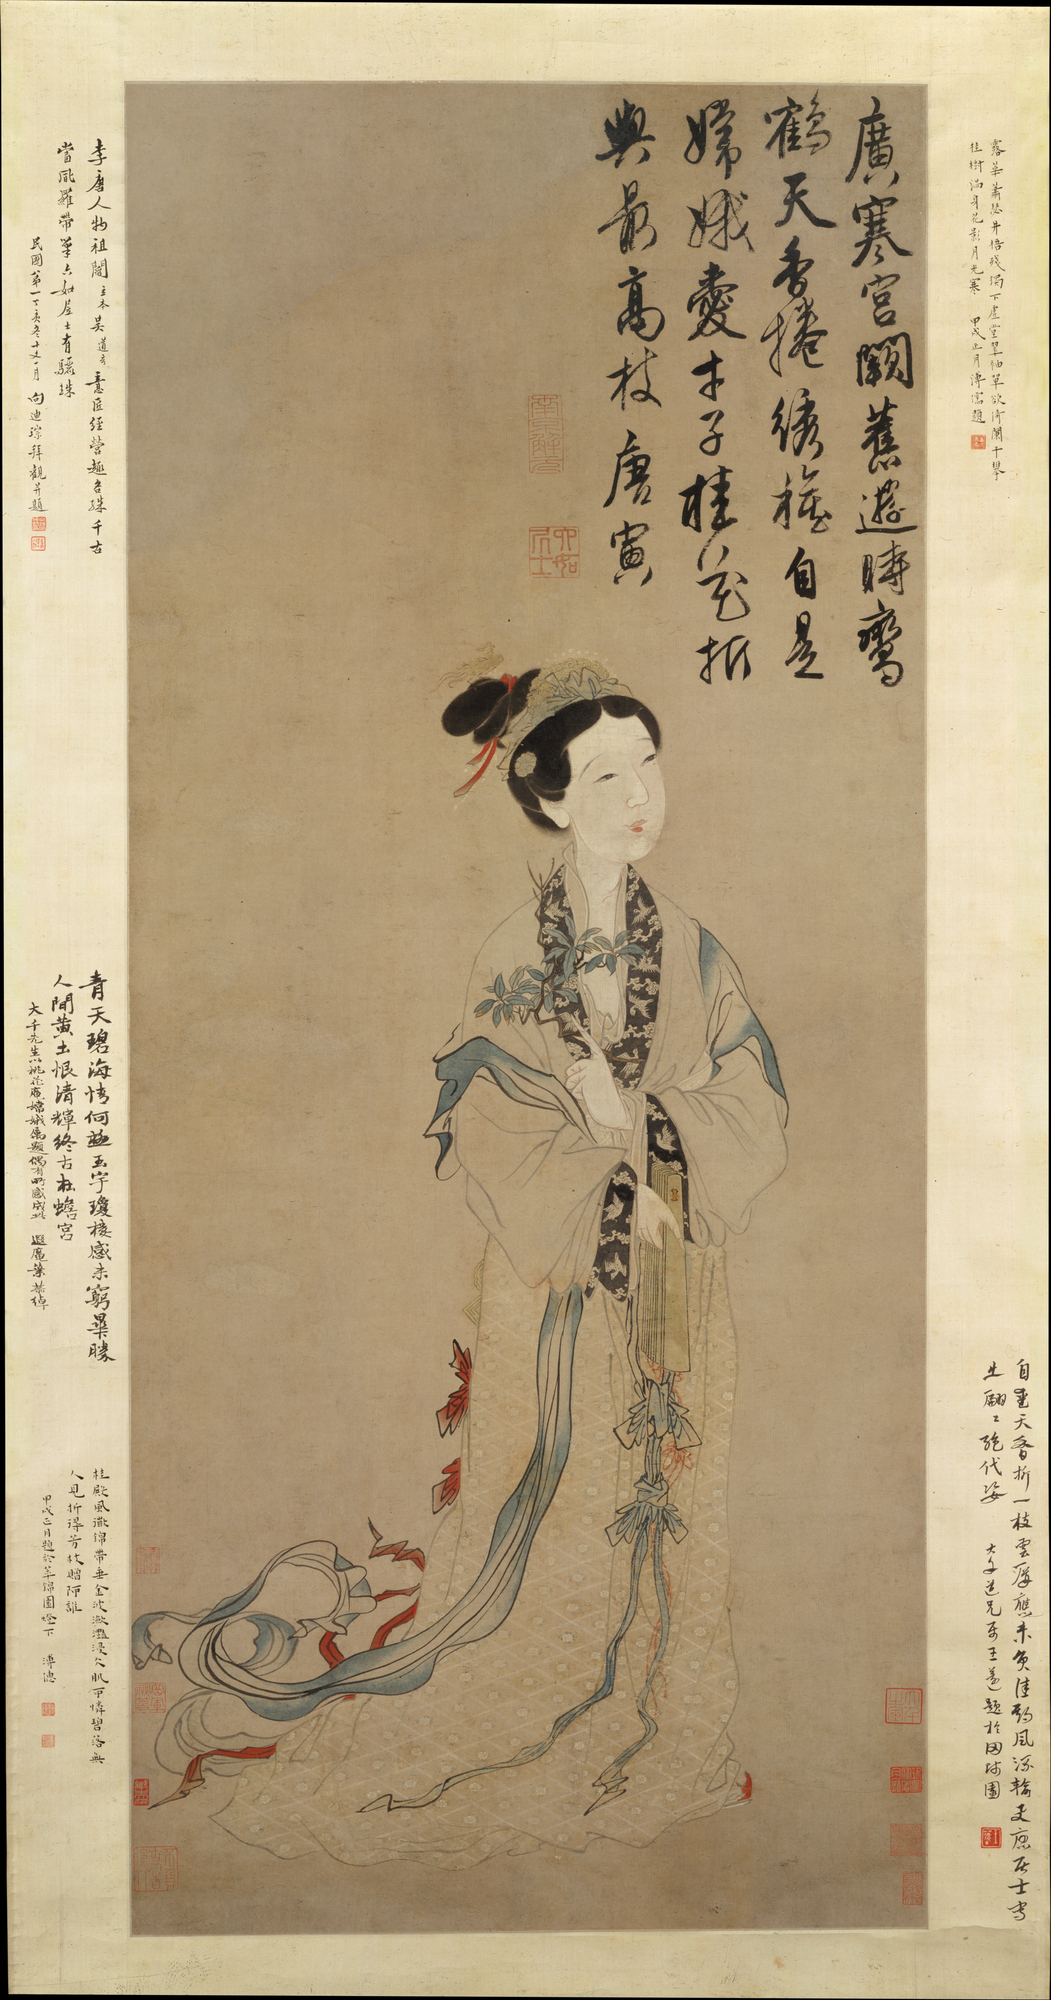 Traditional Chinese painting of the moon goddess Chang'e.